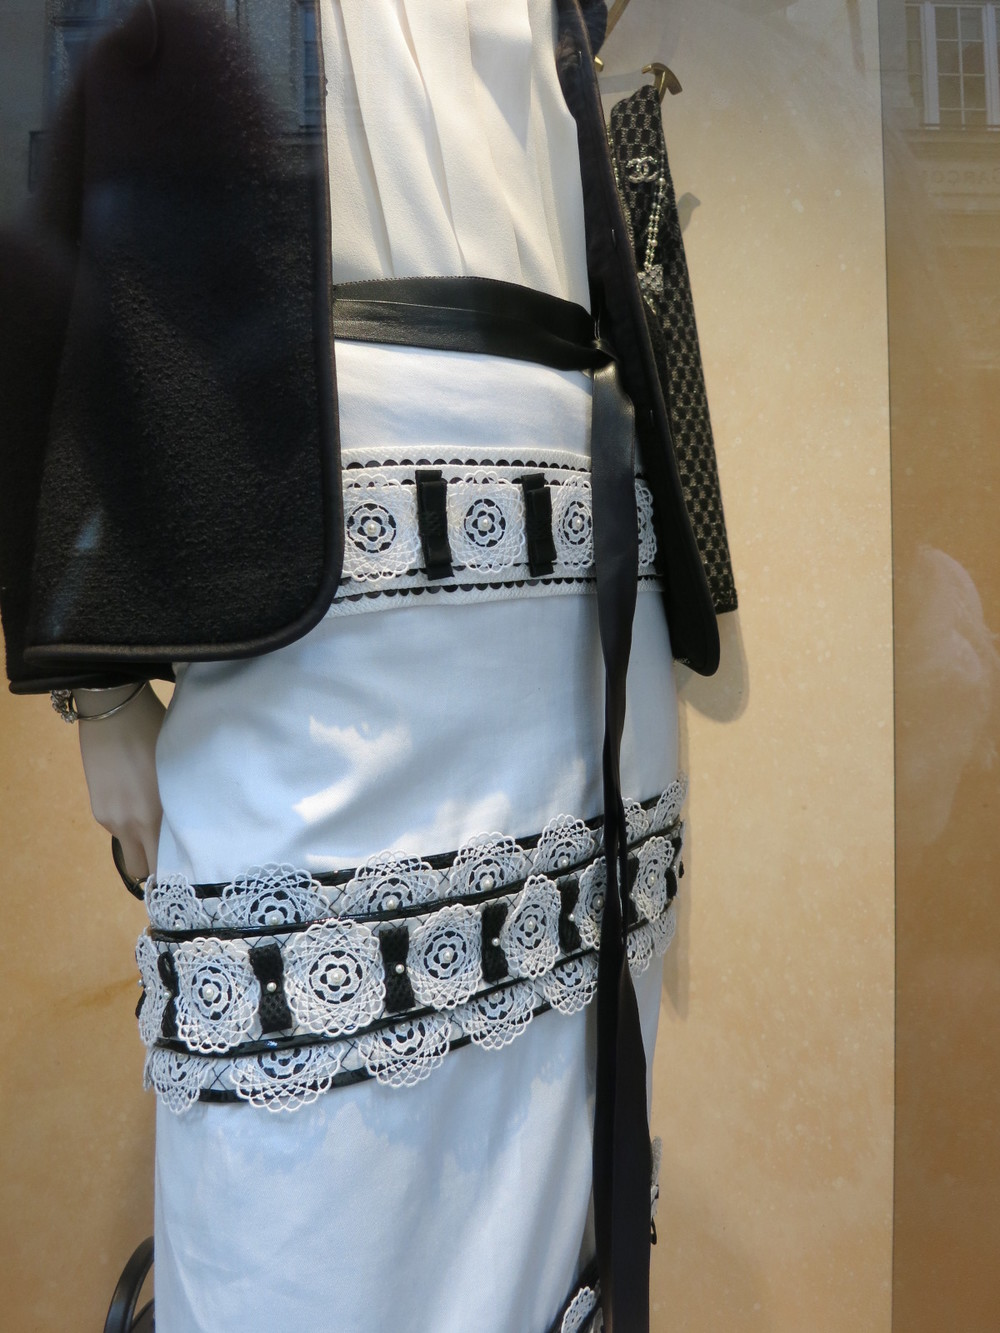 Coco Chanel 31 rue Cambord, Paris. A beautiful ensemble from a 2015 Chanel collection.